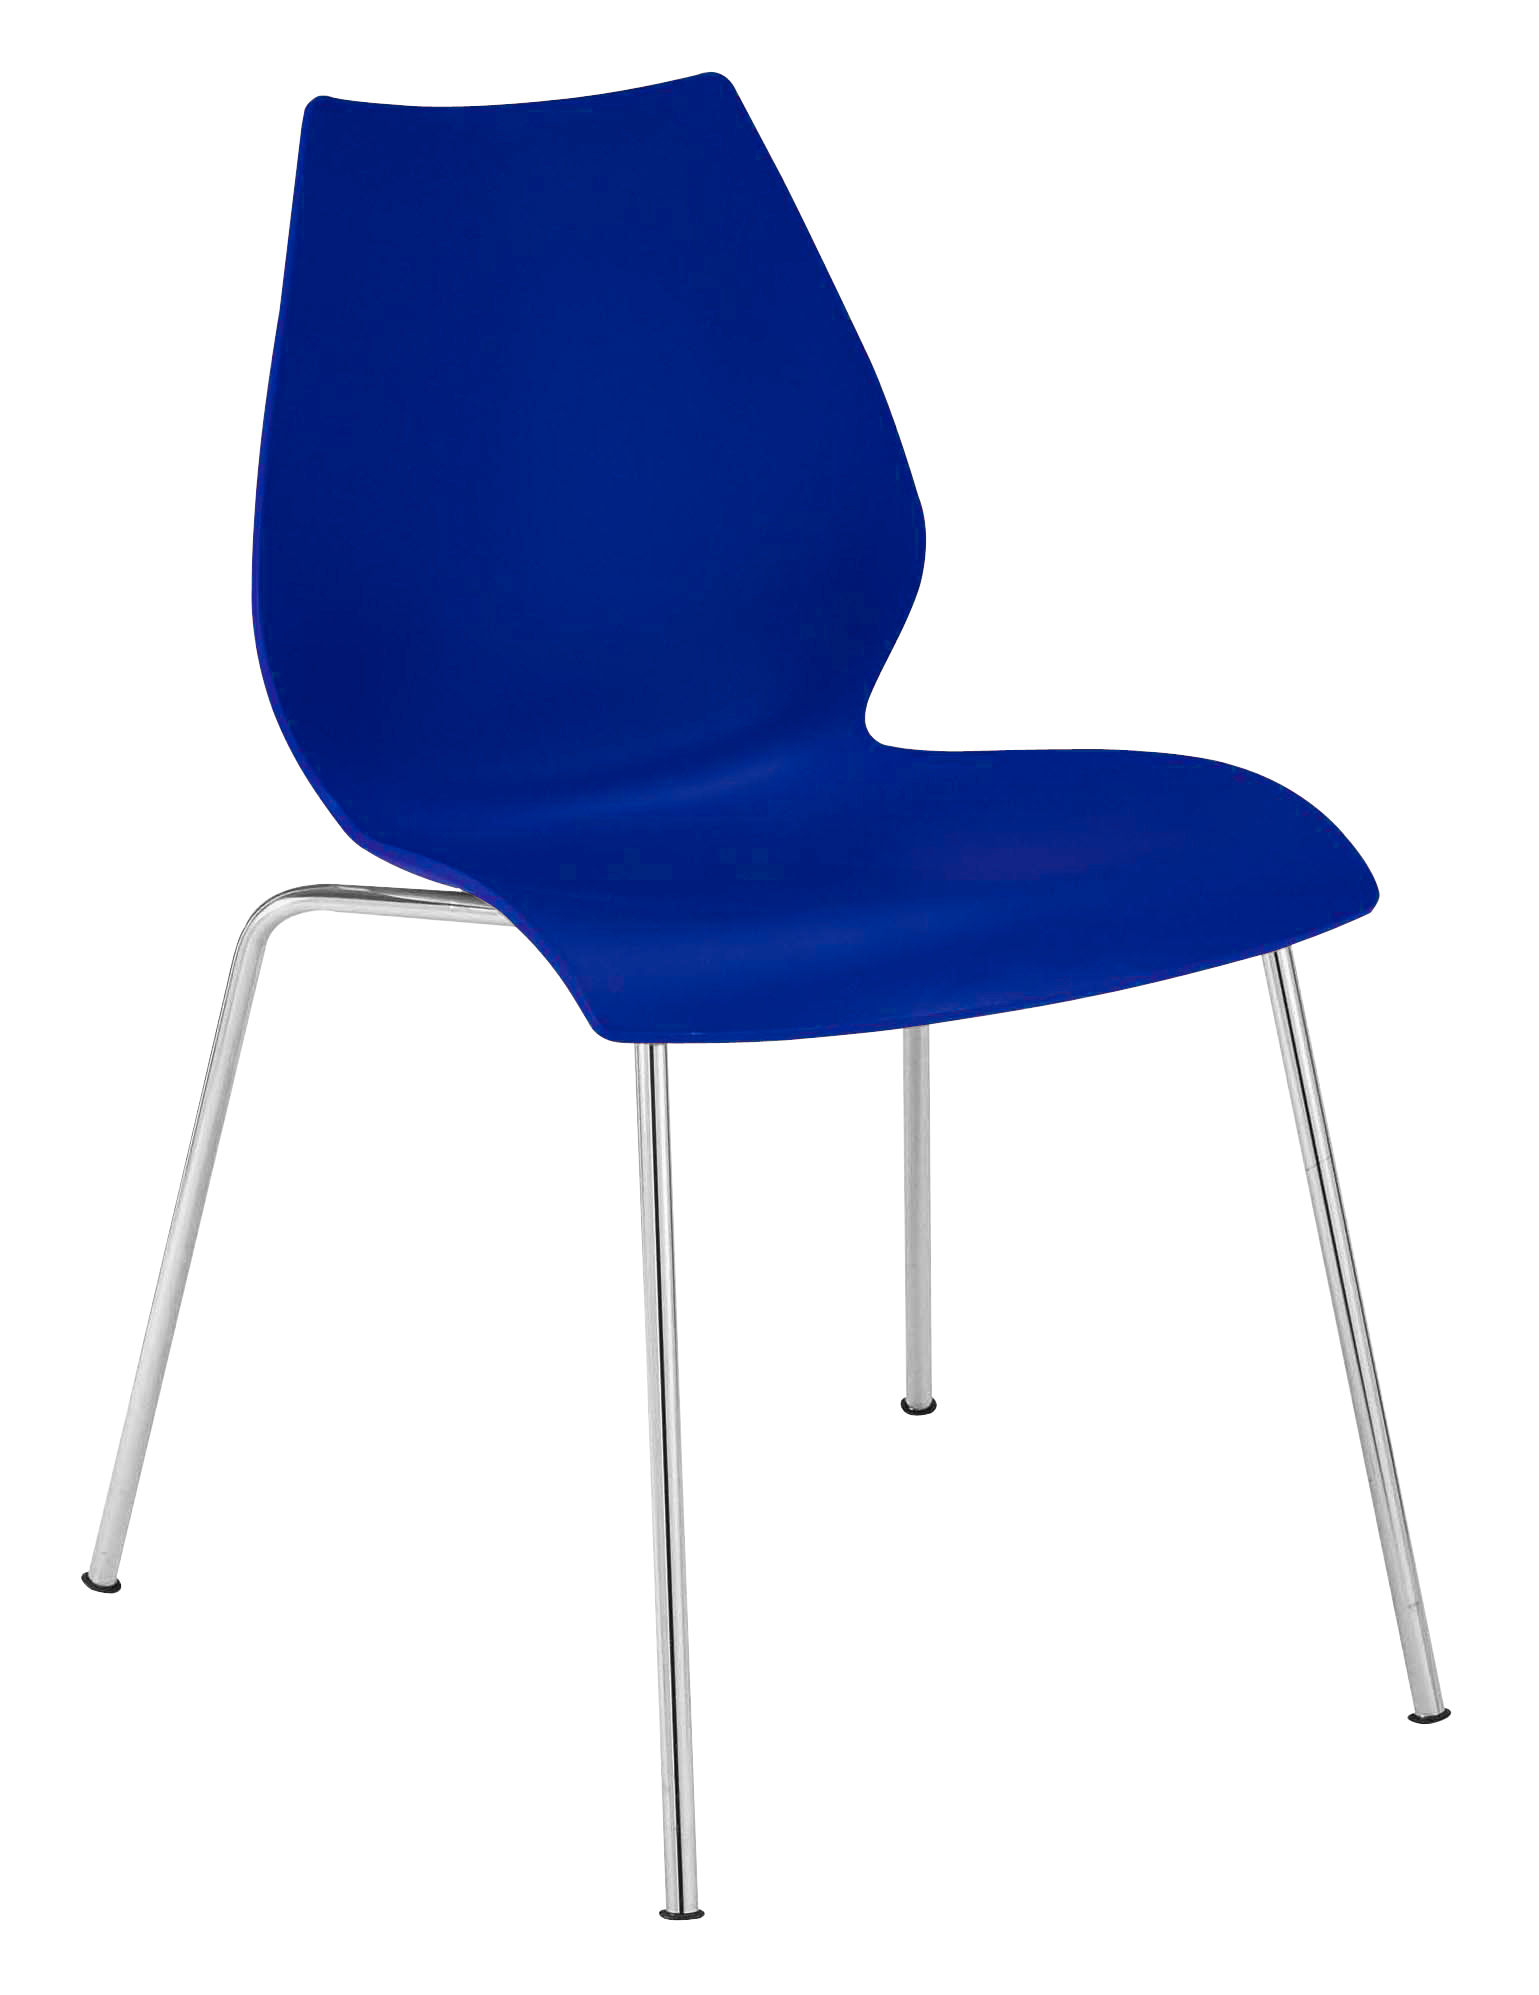 Furniture - Chairs - Maui Stacking chair - Plastic seat & metal legs by Kartell - Dark blue - Chromed steel, Polypropylene